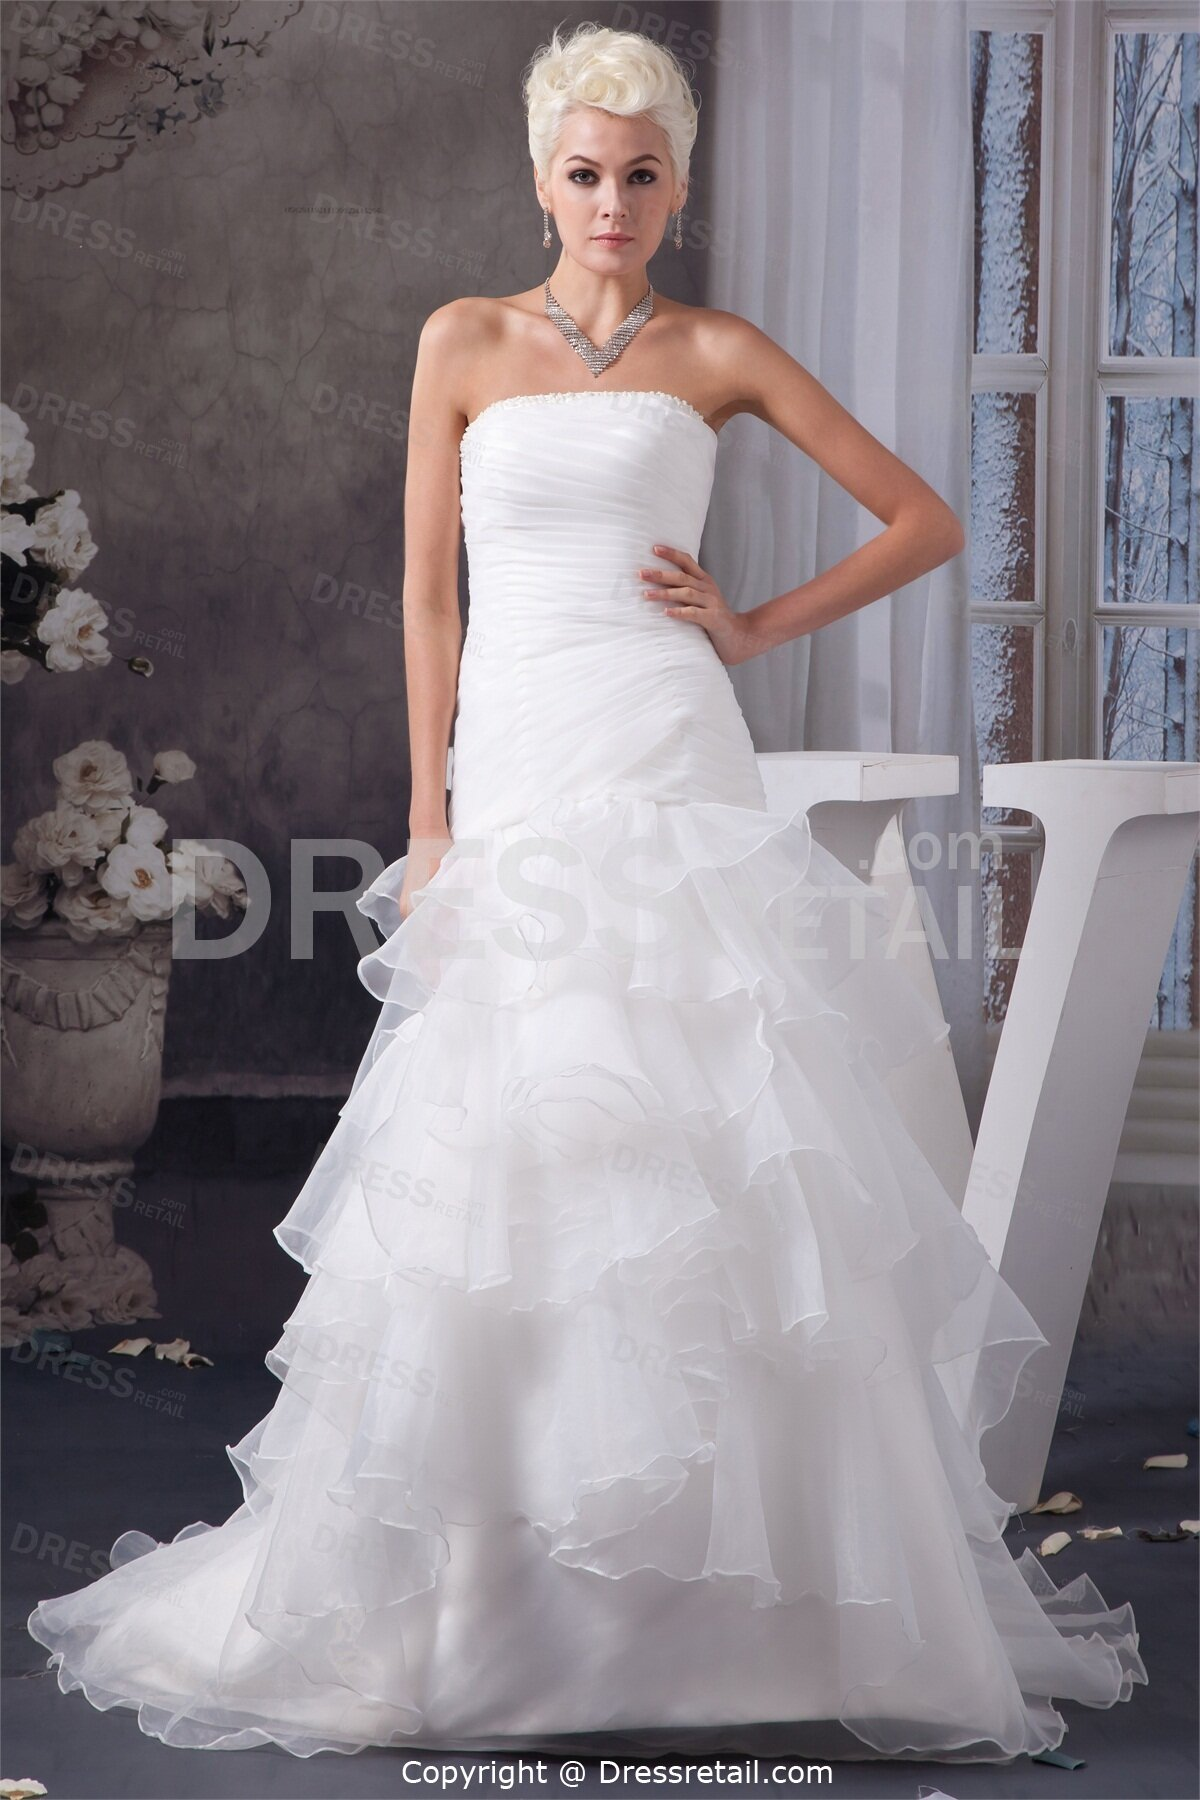 Beautiful white wedding dresses pictures ideas guide to for Wedding dresses that are white